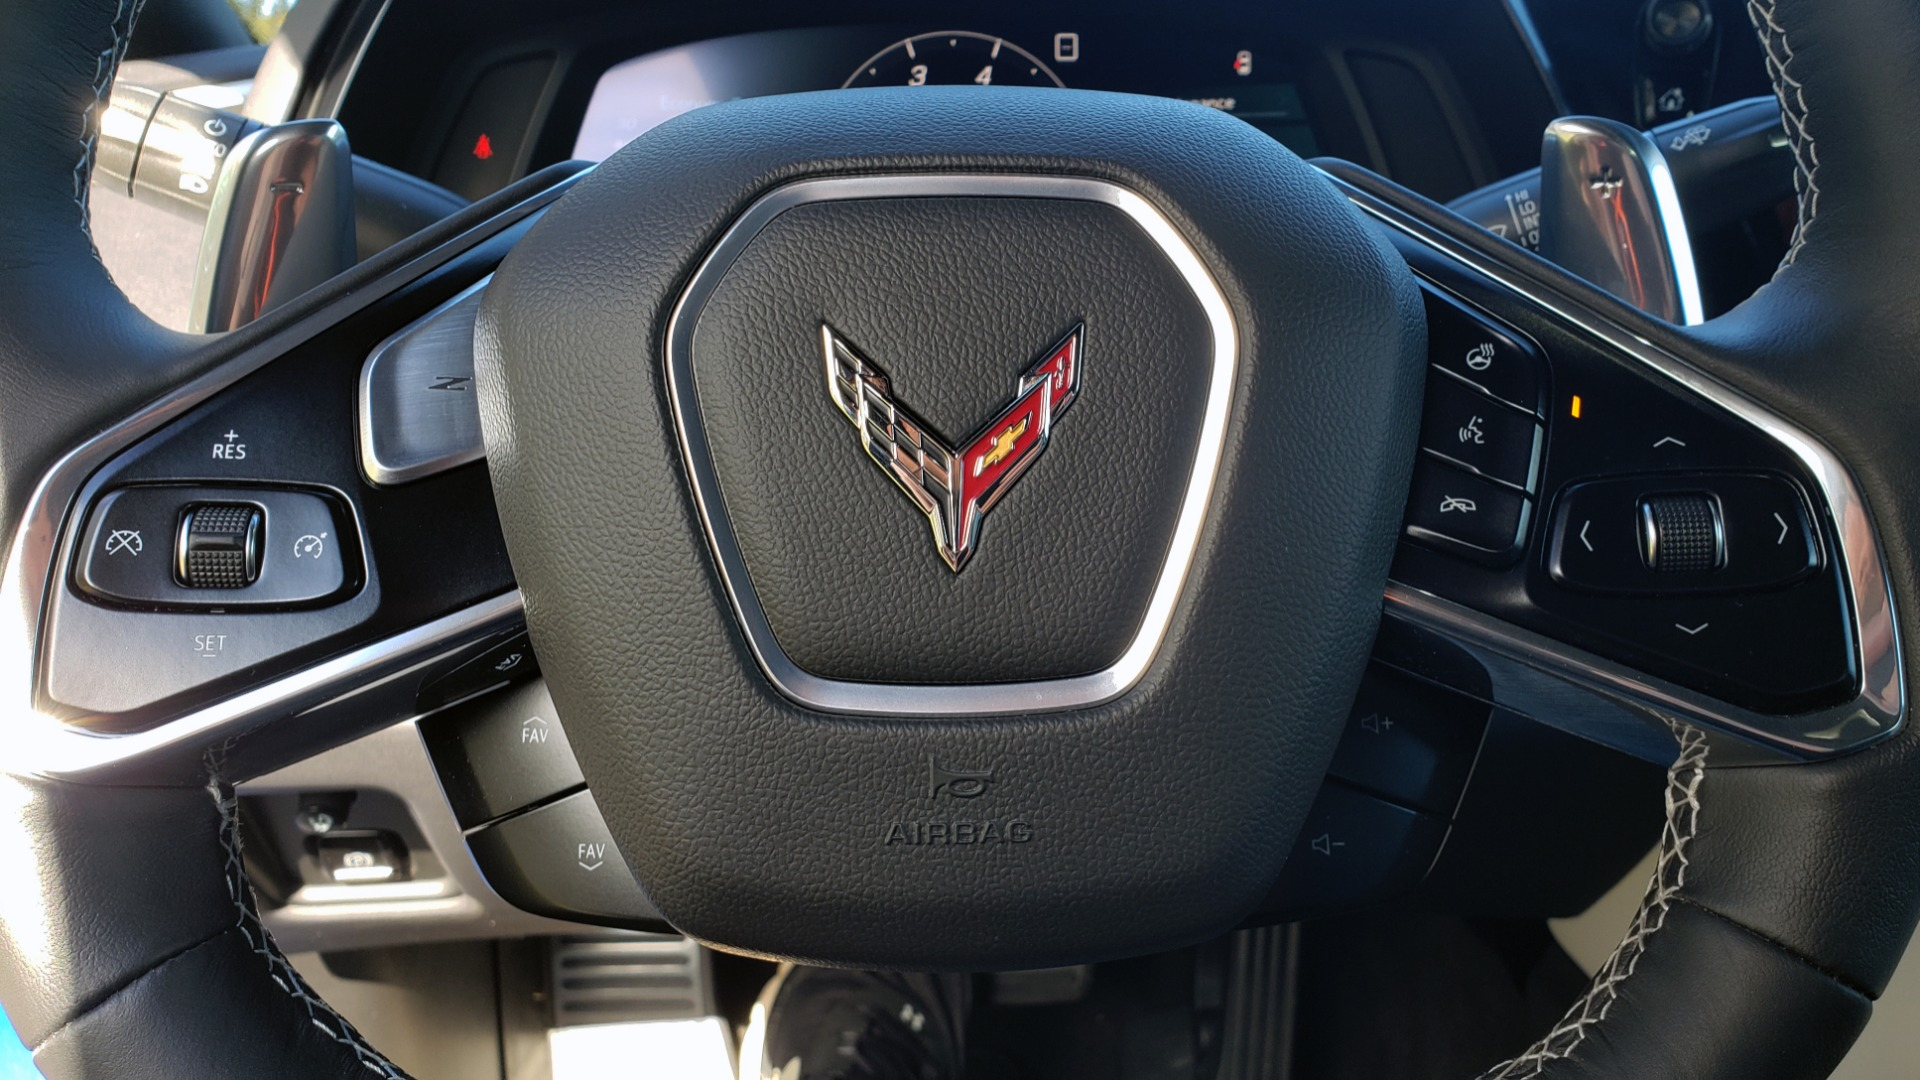 Used 2020 Chevrolet C8 CORVETTE STINGRAY 2LT COUPE / NAV / HUD / BOSE / GT2 SEATS / FRONT LIFT / REARVIEW for sale $98,999 at Formula Imports in Charlotte NC 28227 57